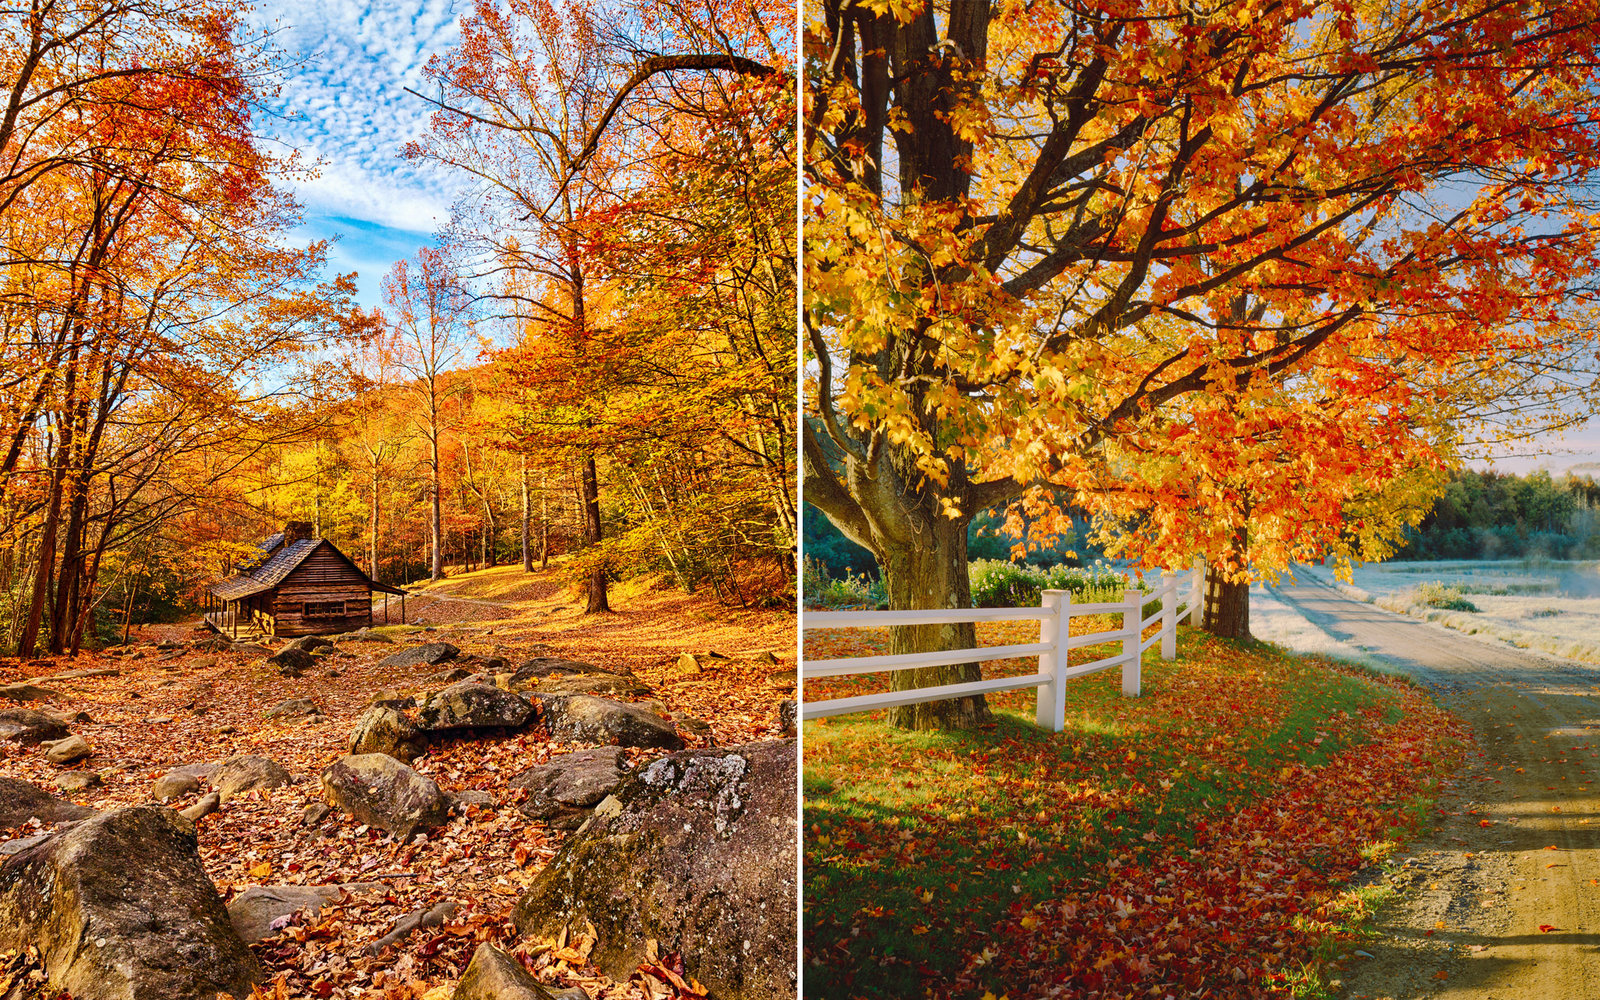 Active Iphone X Wallpaper The Only Map You Need To Plan A Perfect Fall Foliage Trip